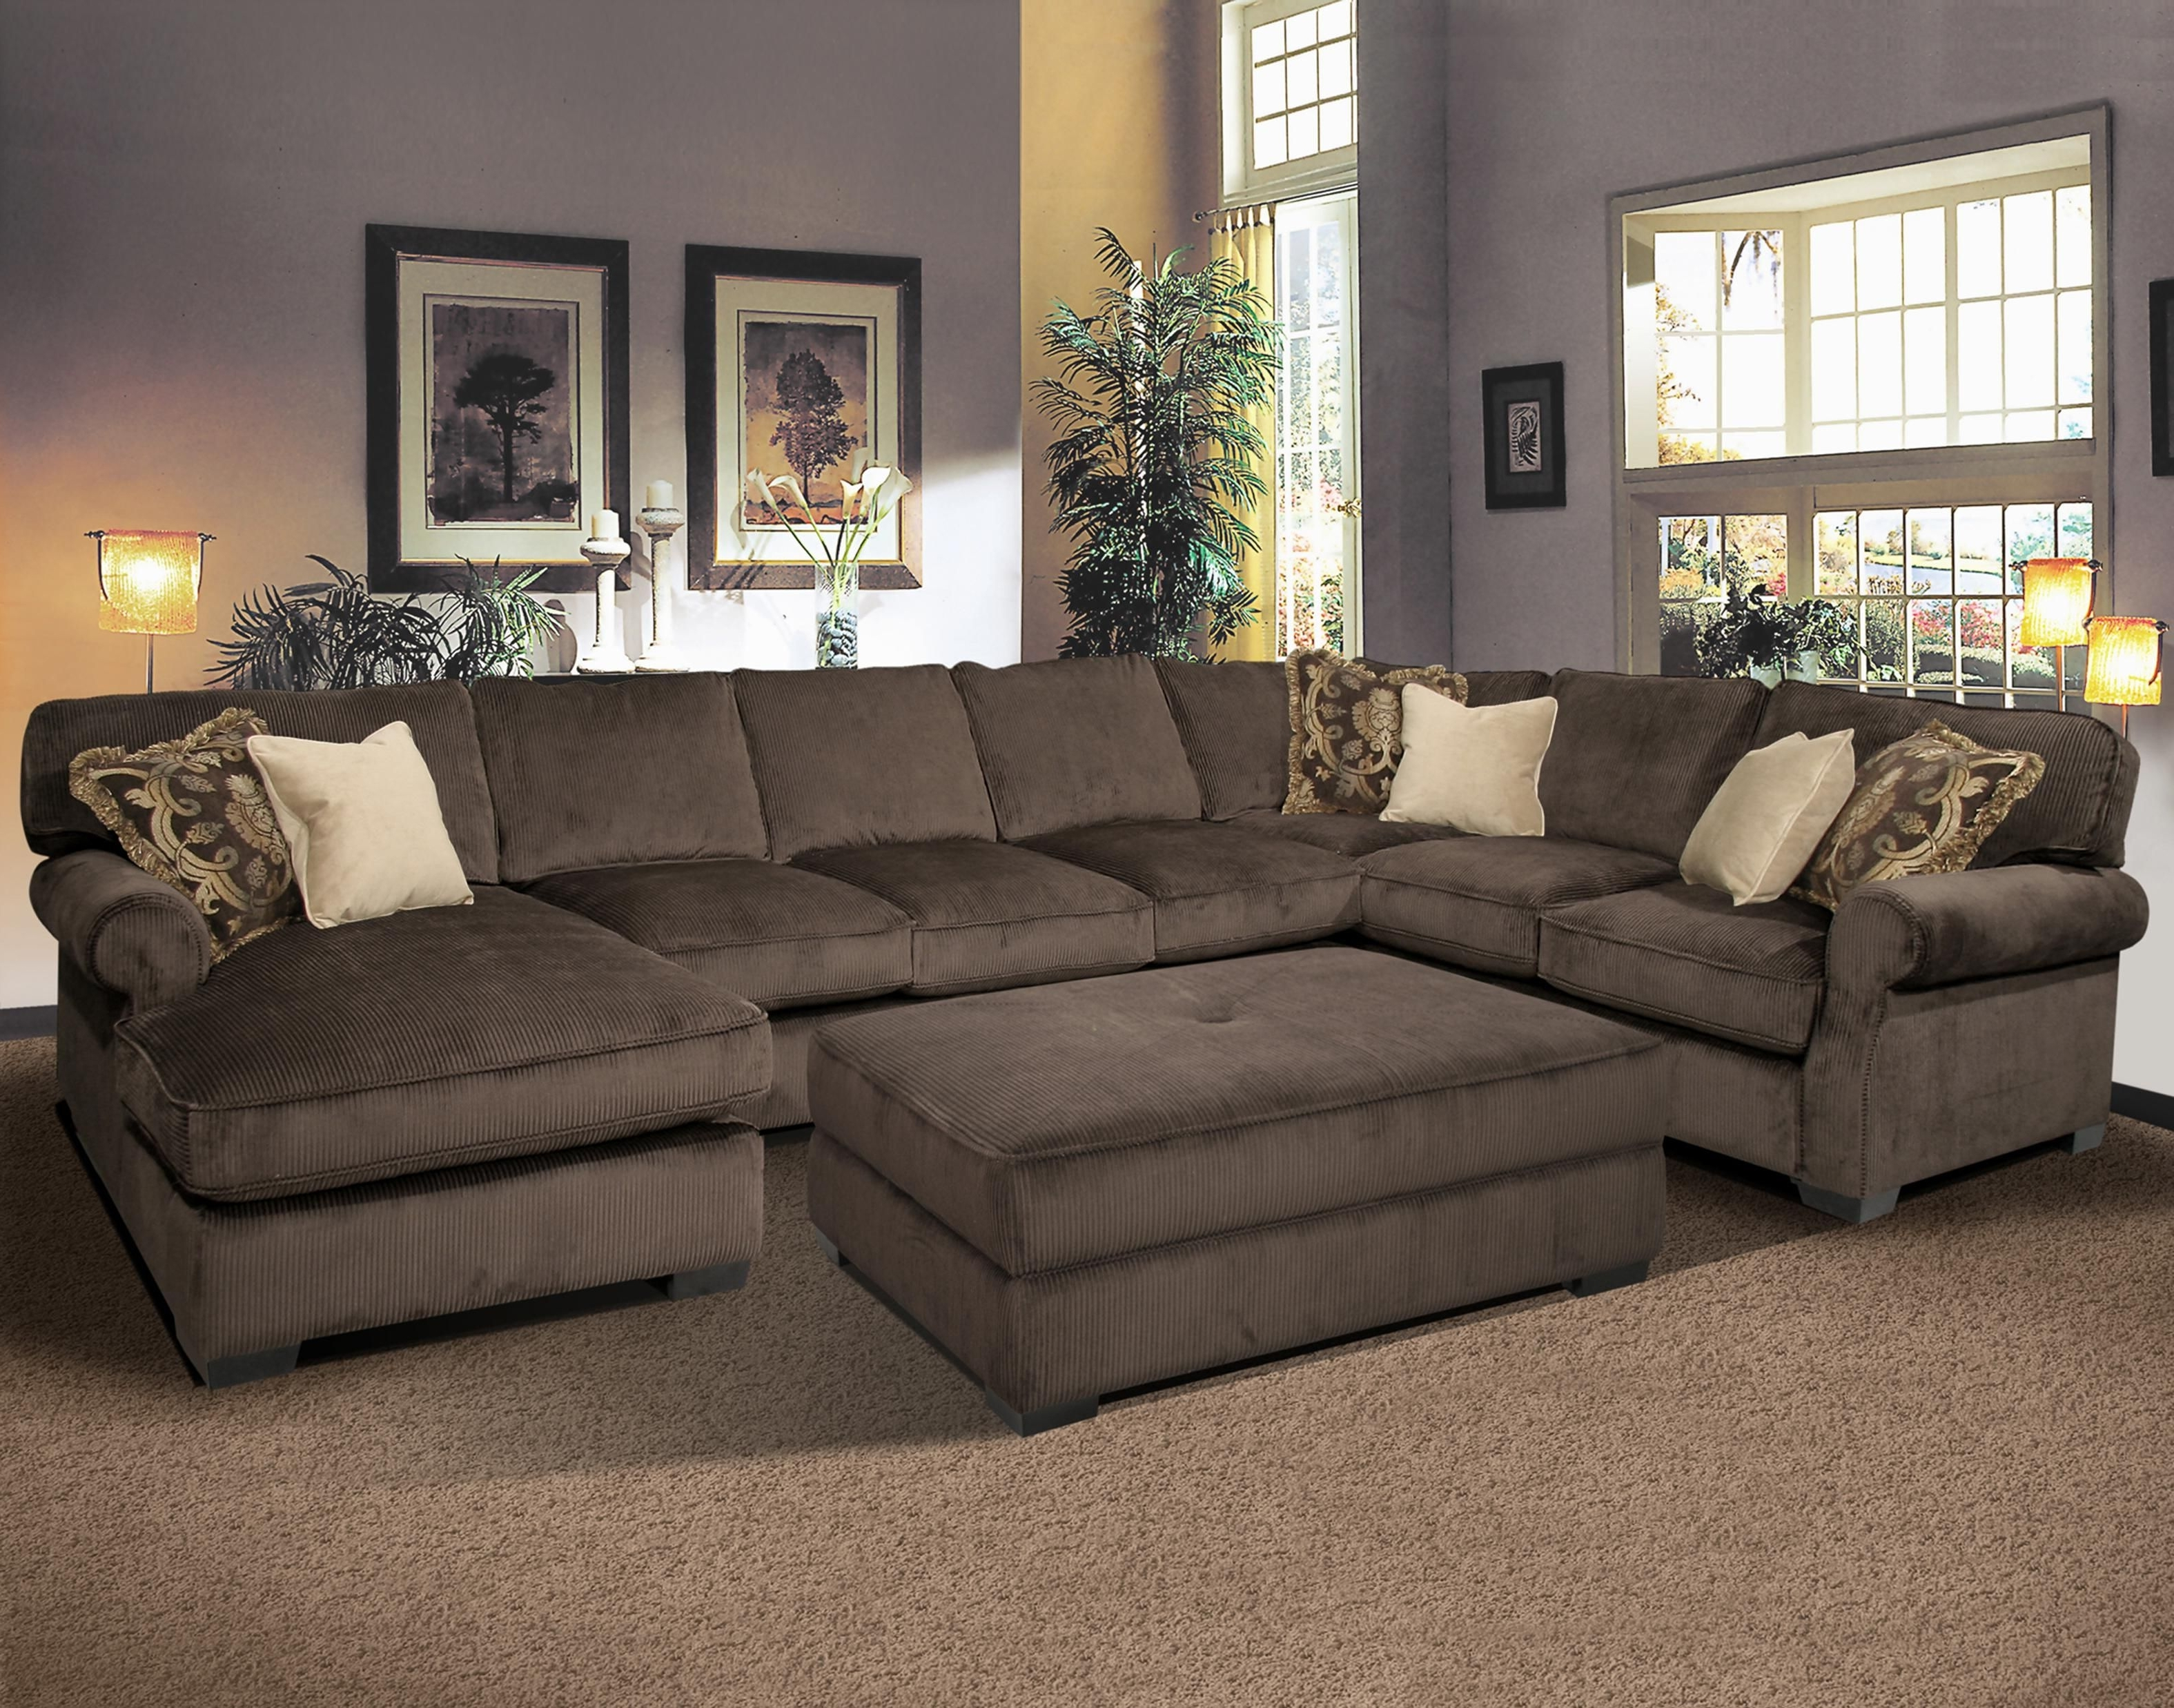 Long Chaise Sofas Inside Widely Used Big And Comfy Grand Island Large, 7 Seat Sectional Sofa With Right (View 9 of 20)